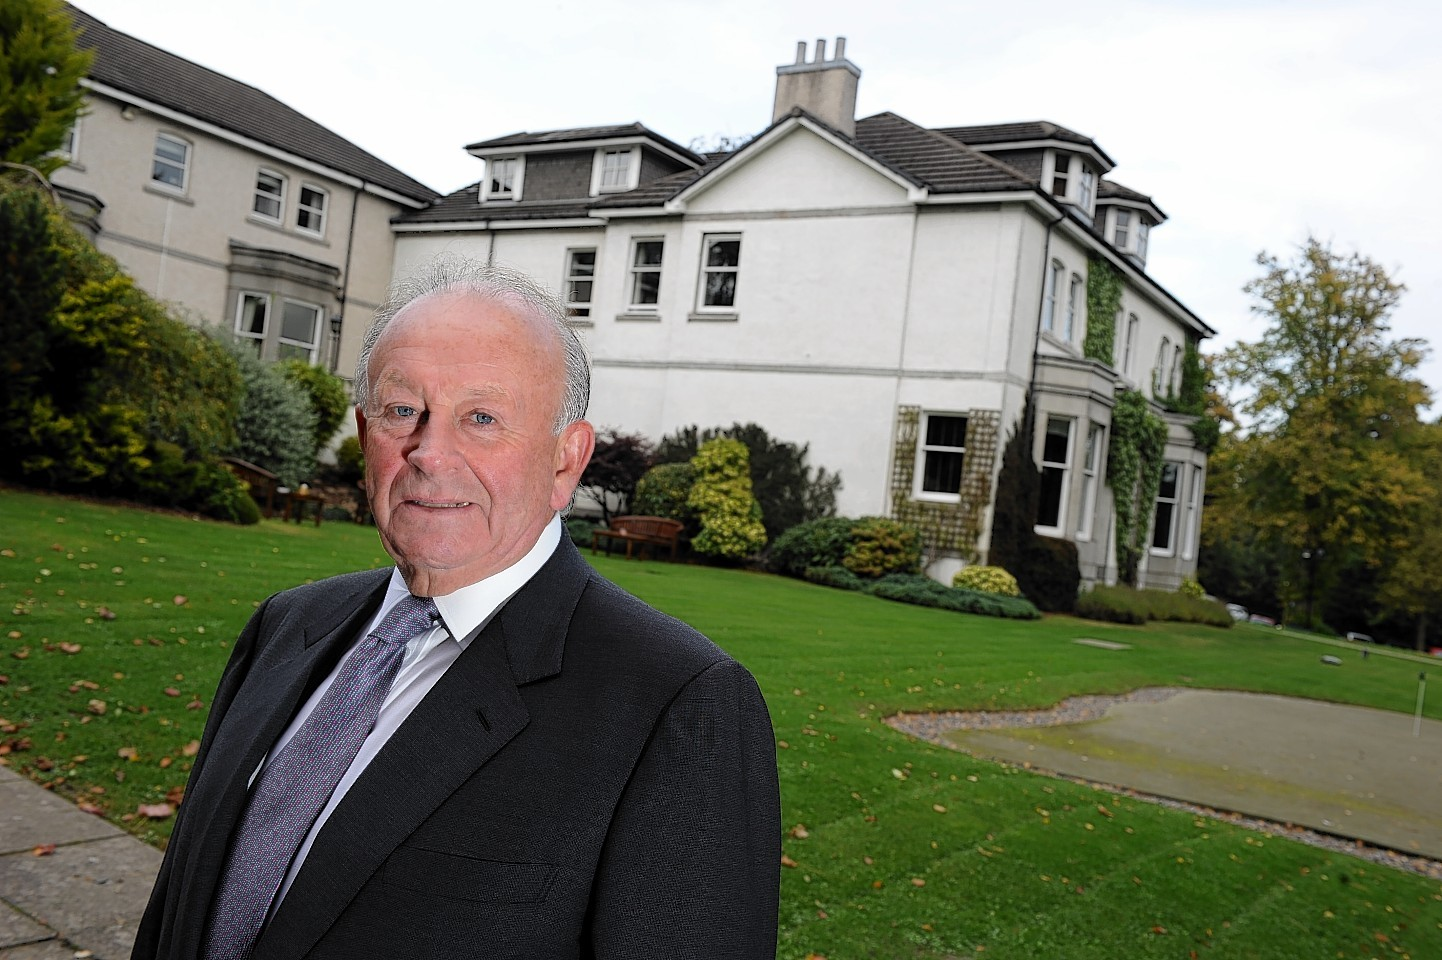 Stewart Spence has been made an MBE for services to the tourism industry in Scotland